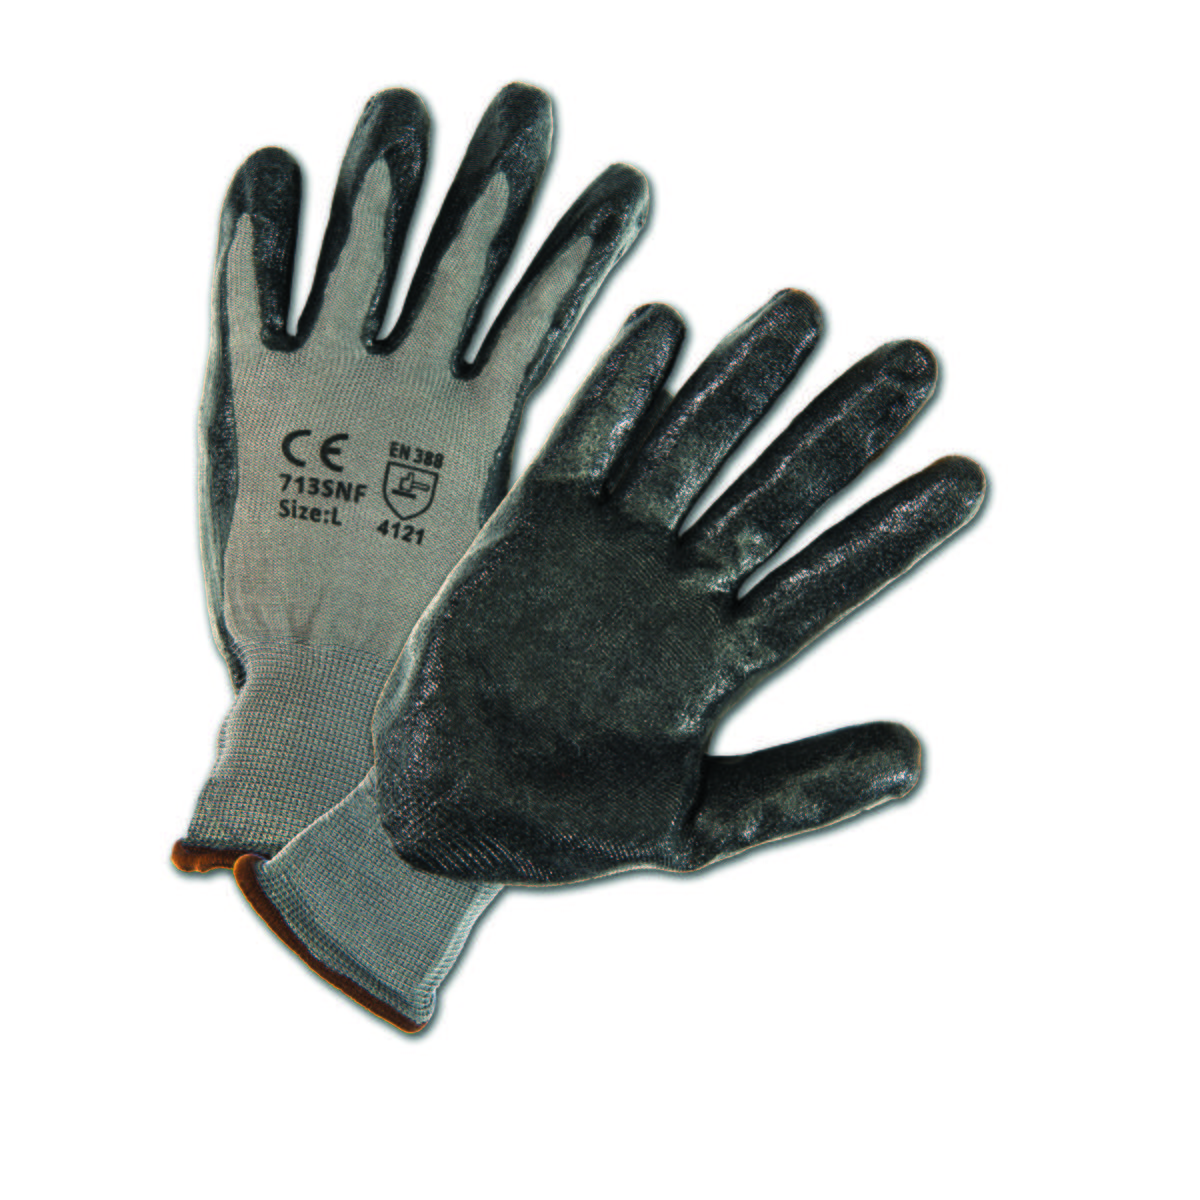 Glove Hi-dexterity foam nitrile on a gray nylon knit shell, knit wrist, machine washable